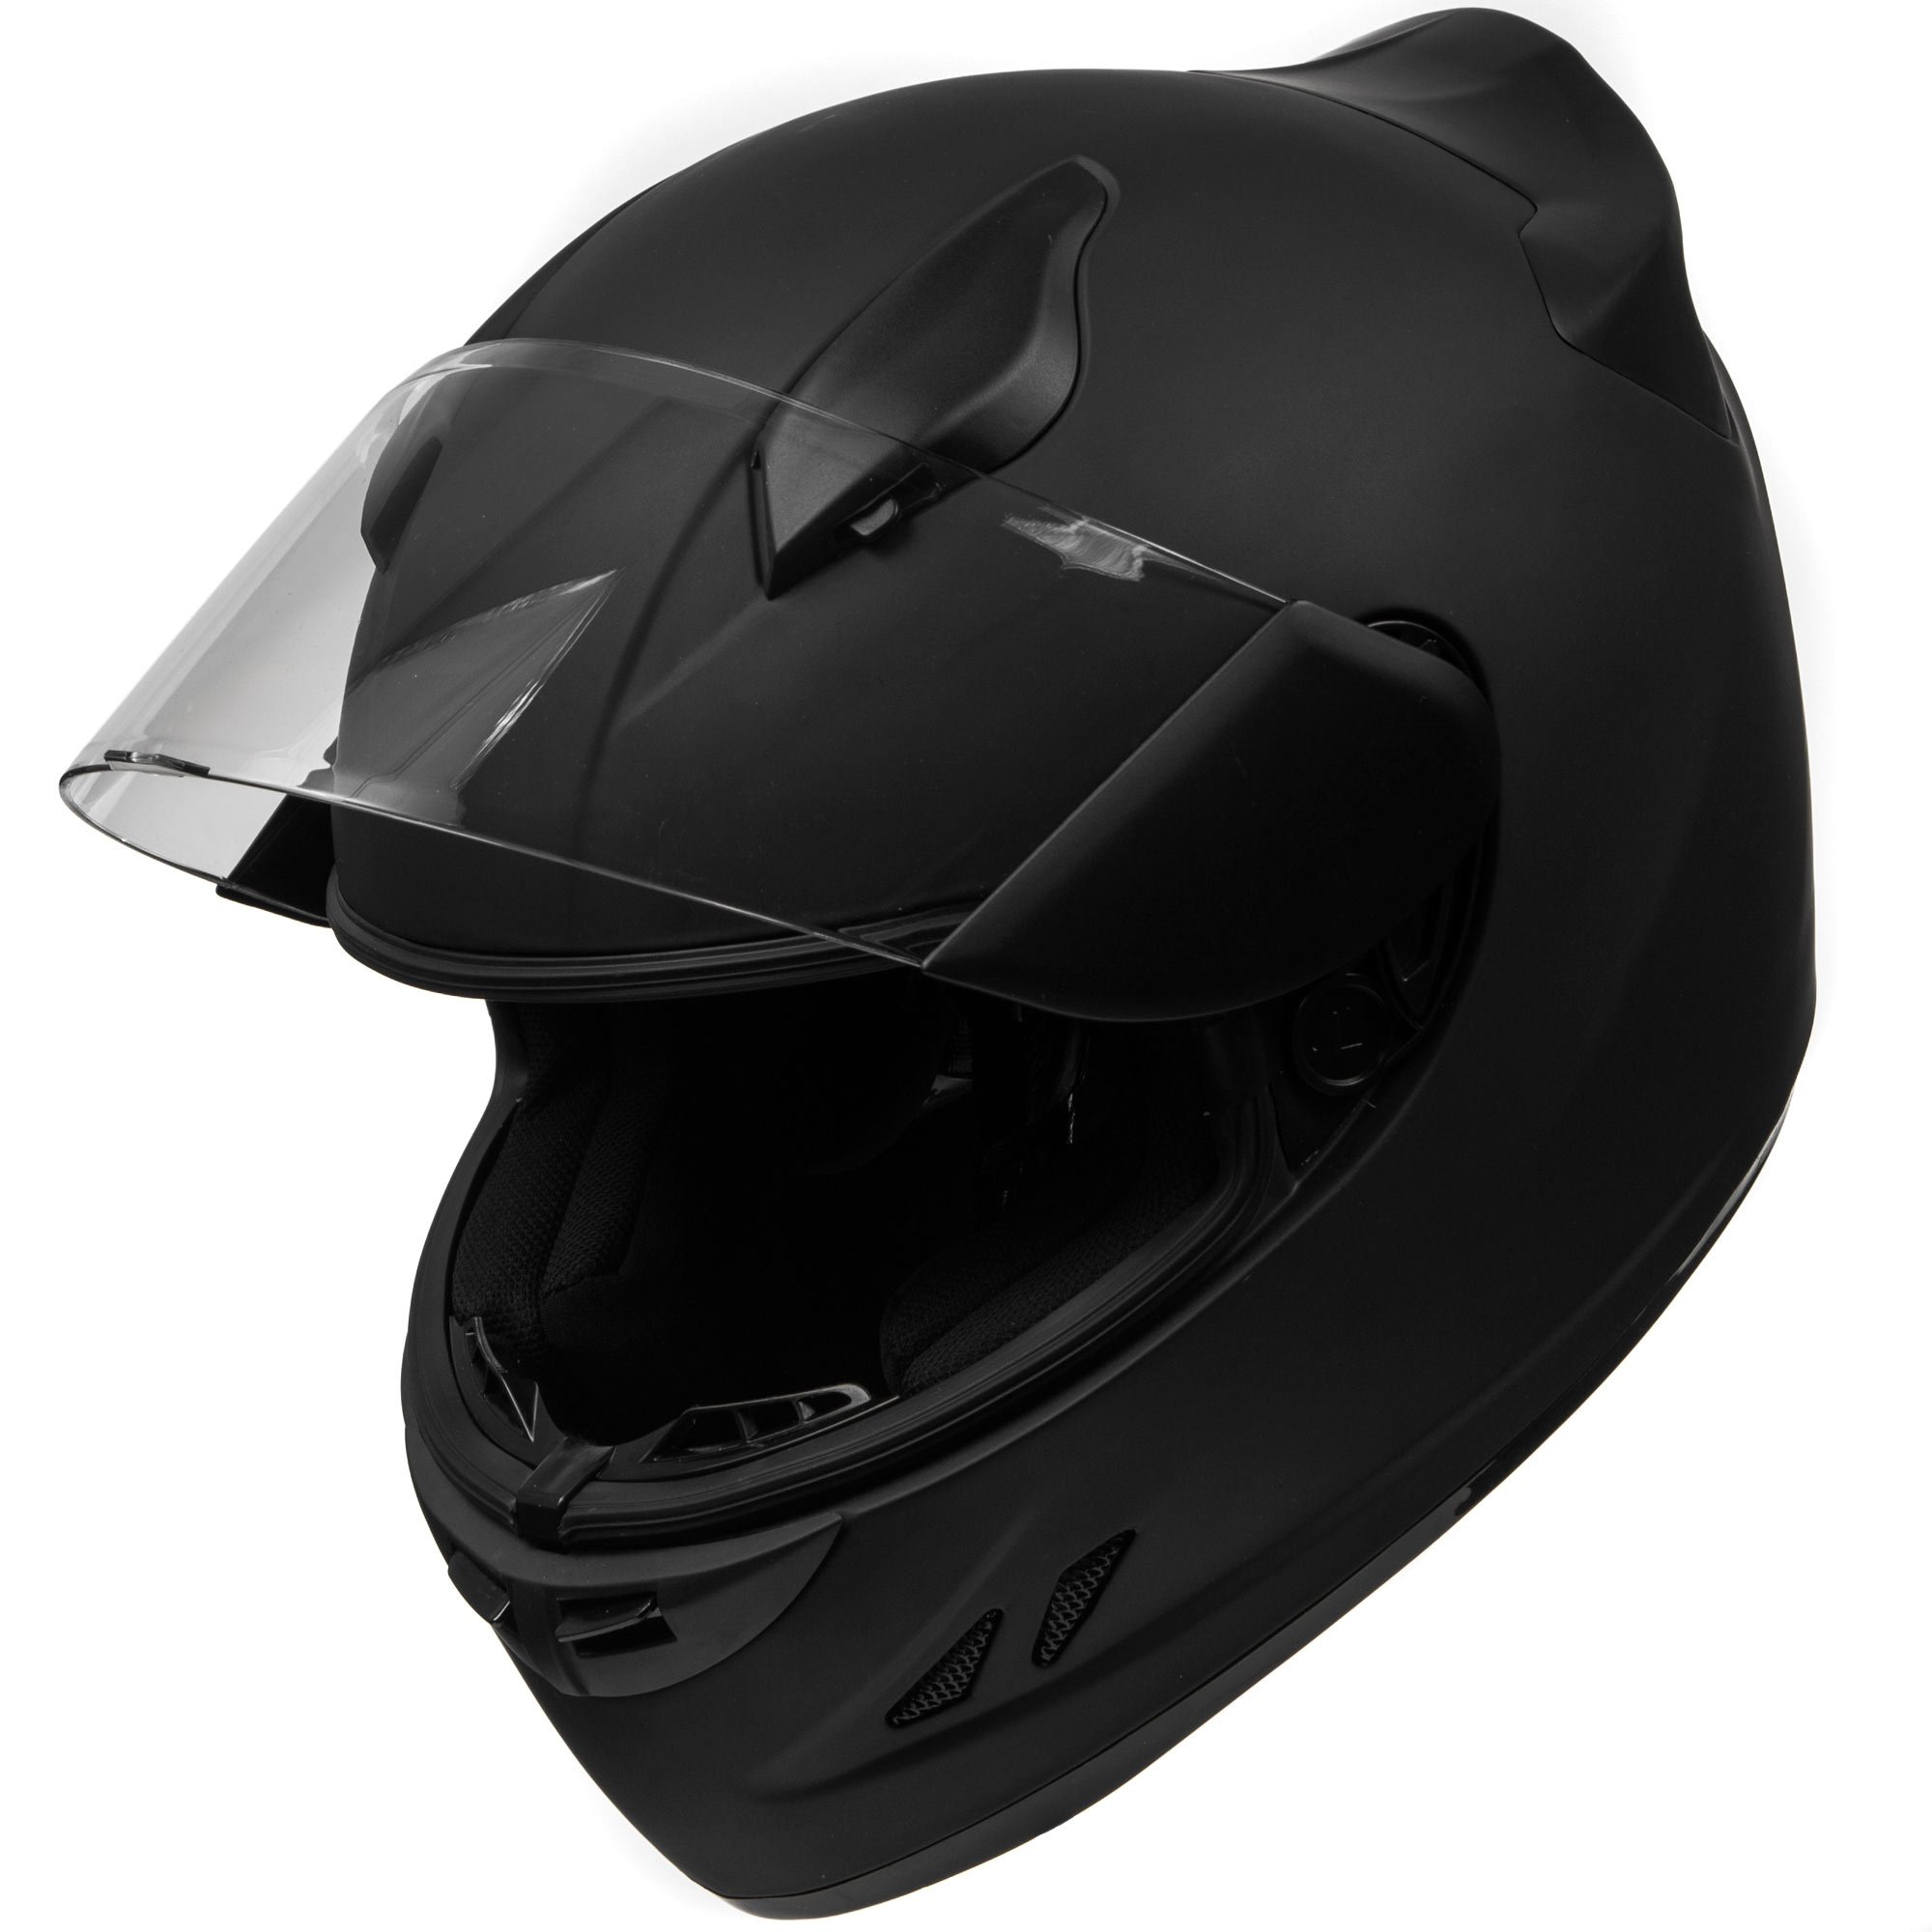 KOI DOT Motorcycle Helmet Full Face KOI Sportbike Matte Black w/Clear Visor - Large + KapscoMoto Keychain